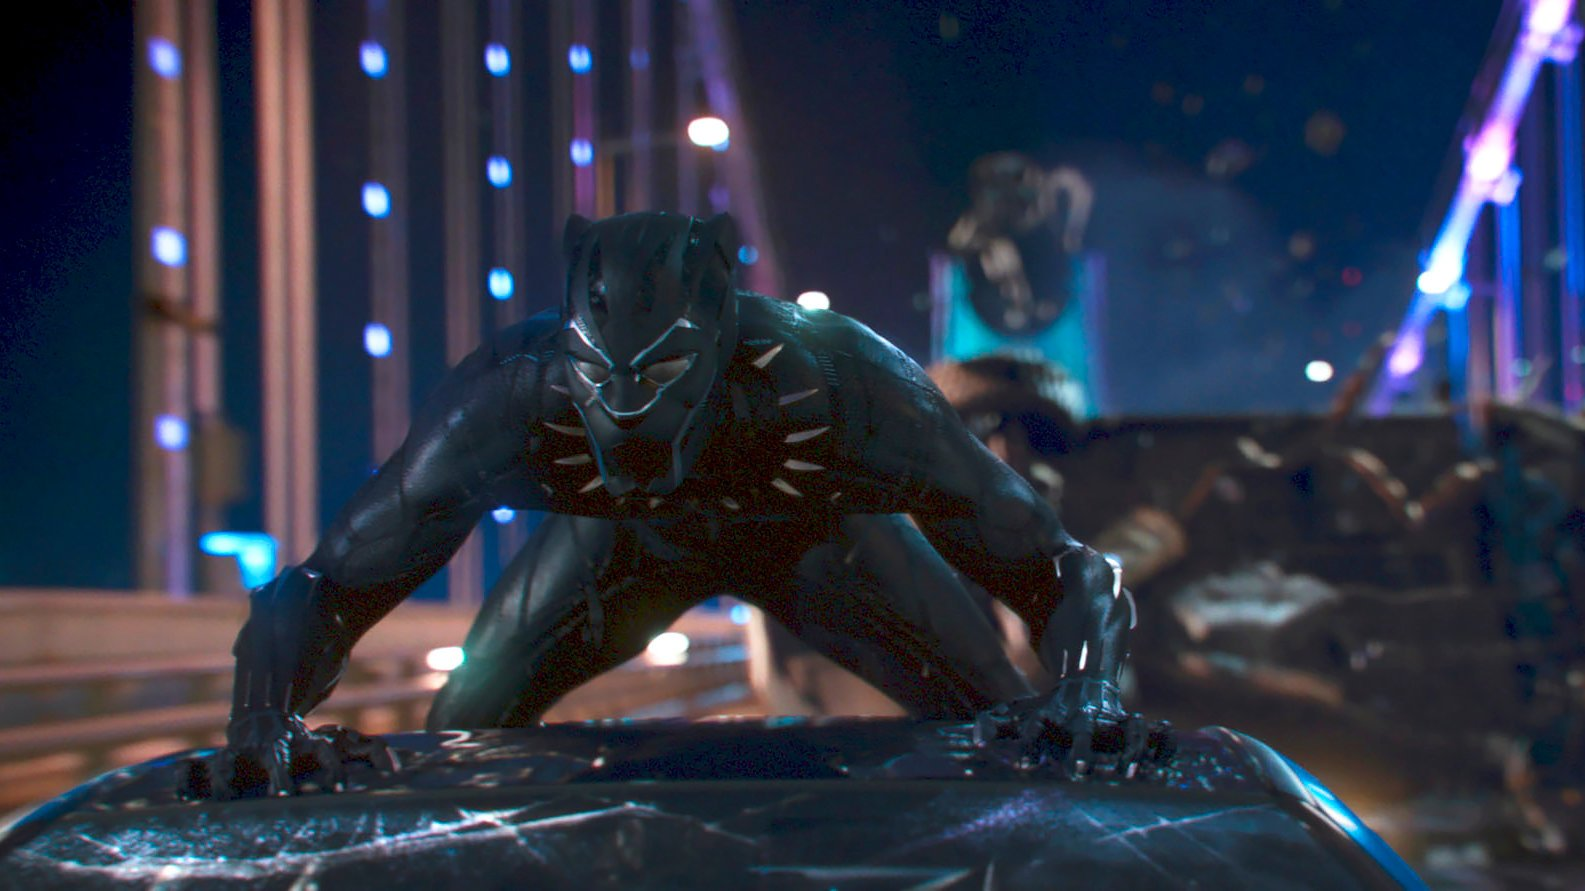 black-panther-watching-cultural-hater